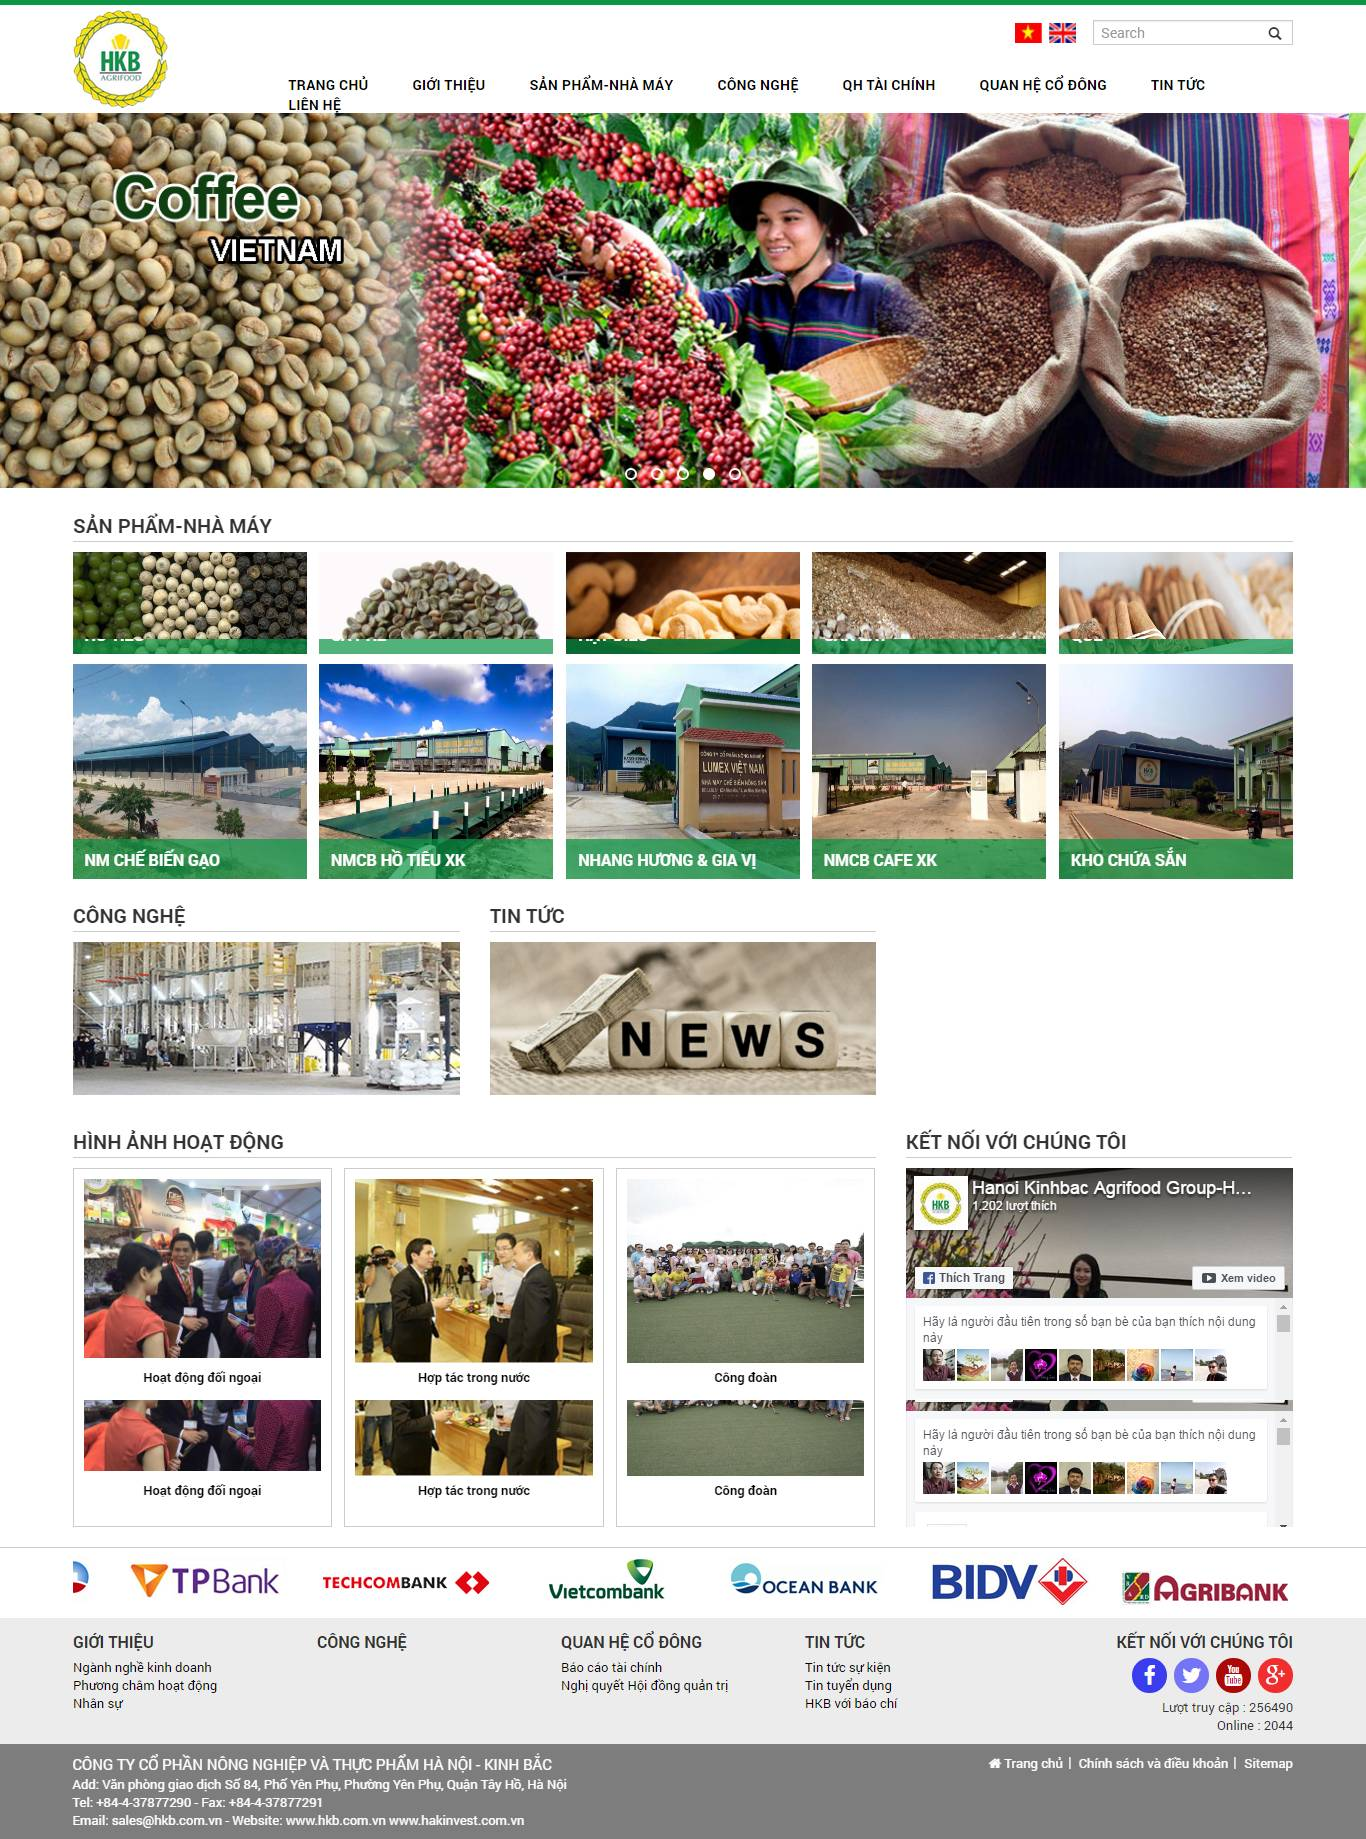 Thiết kế website công ty HKB Agrifood